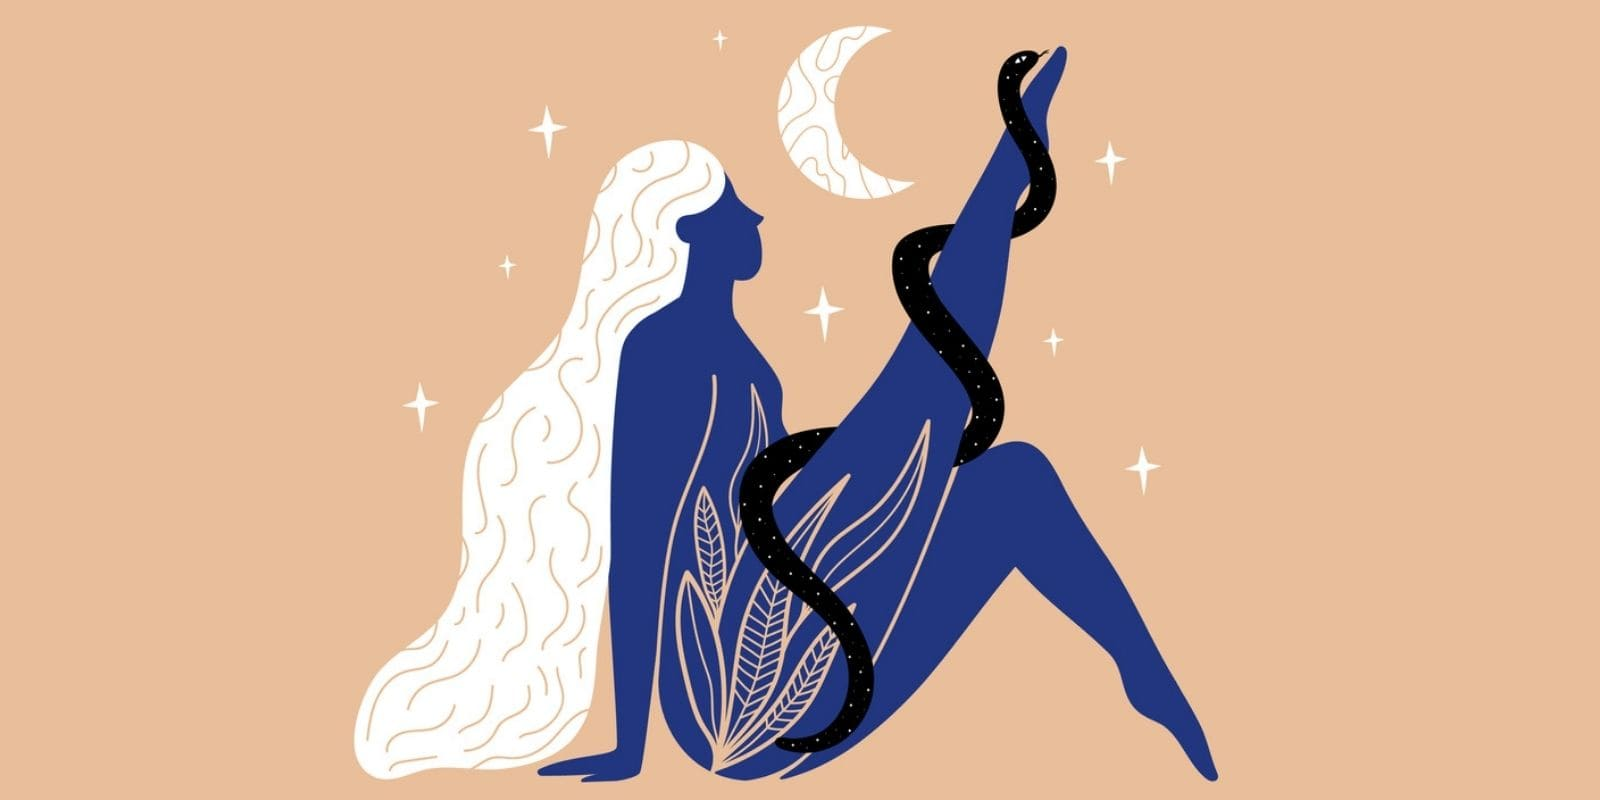 Image of a woman with a snake enrolled around her leg and with the moon up in the sky